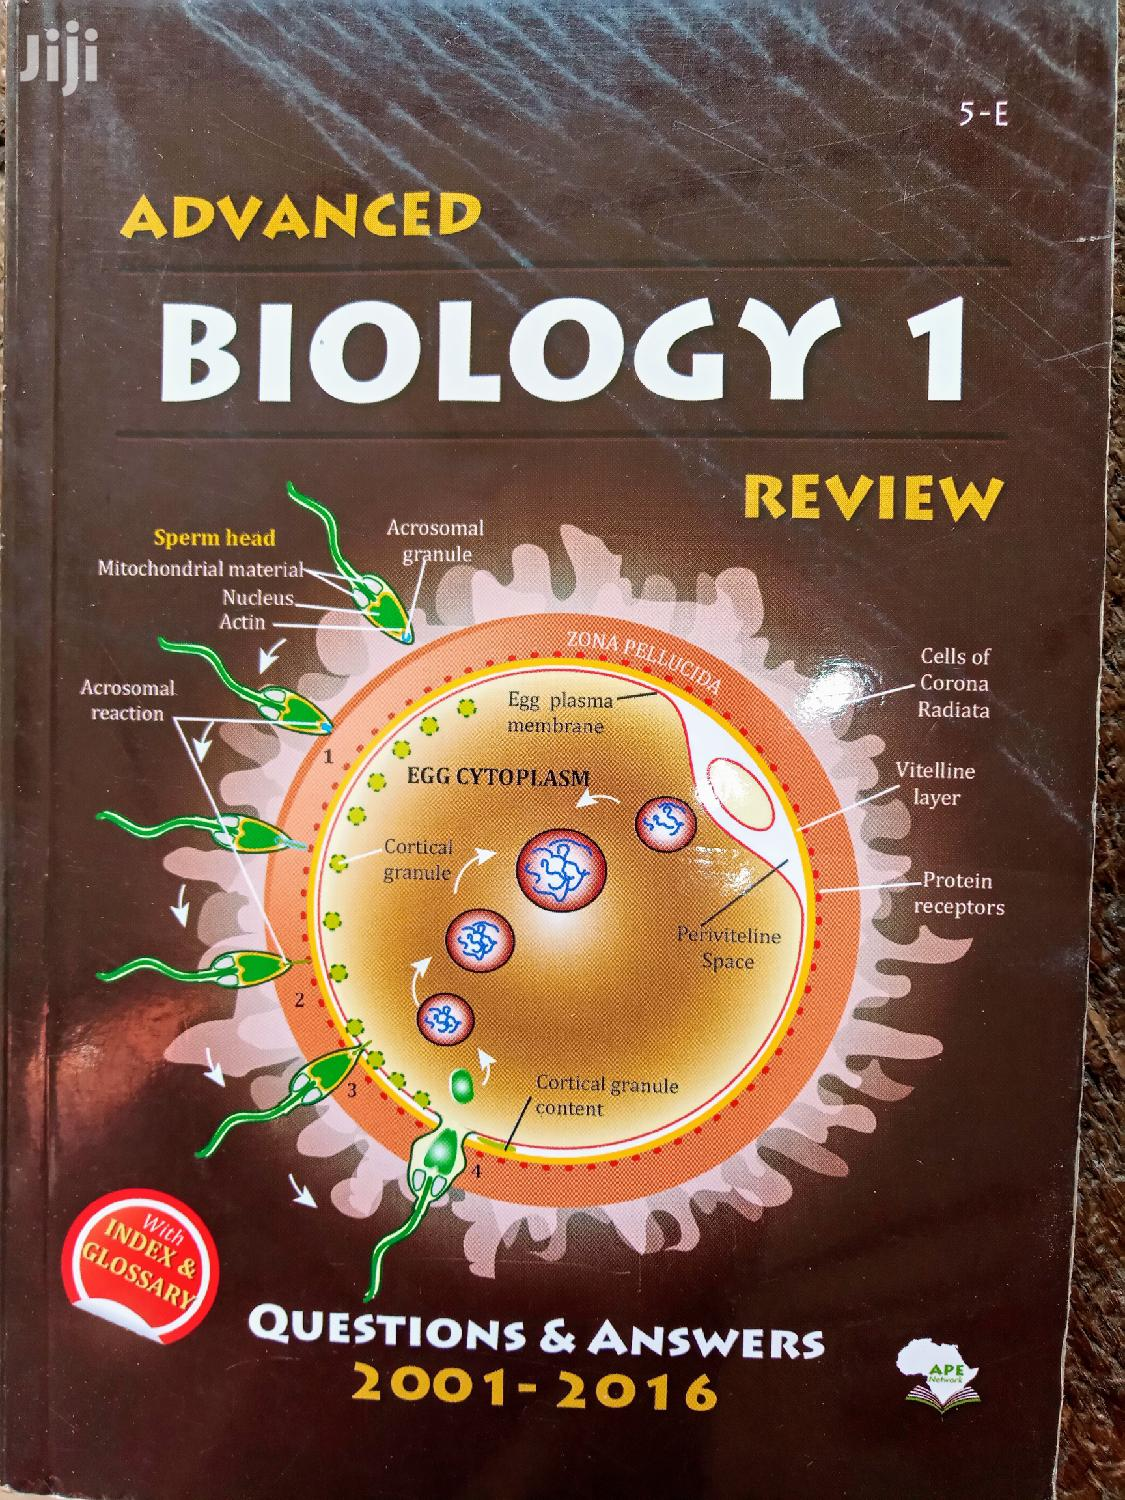 Advanced Level Biology Review Ya Necta